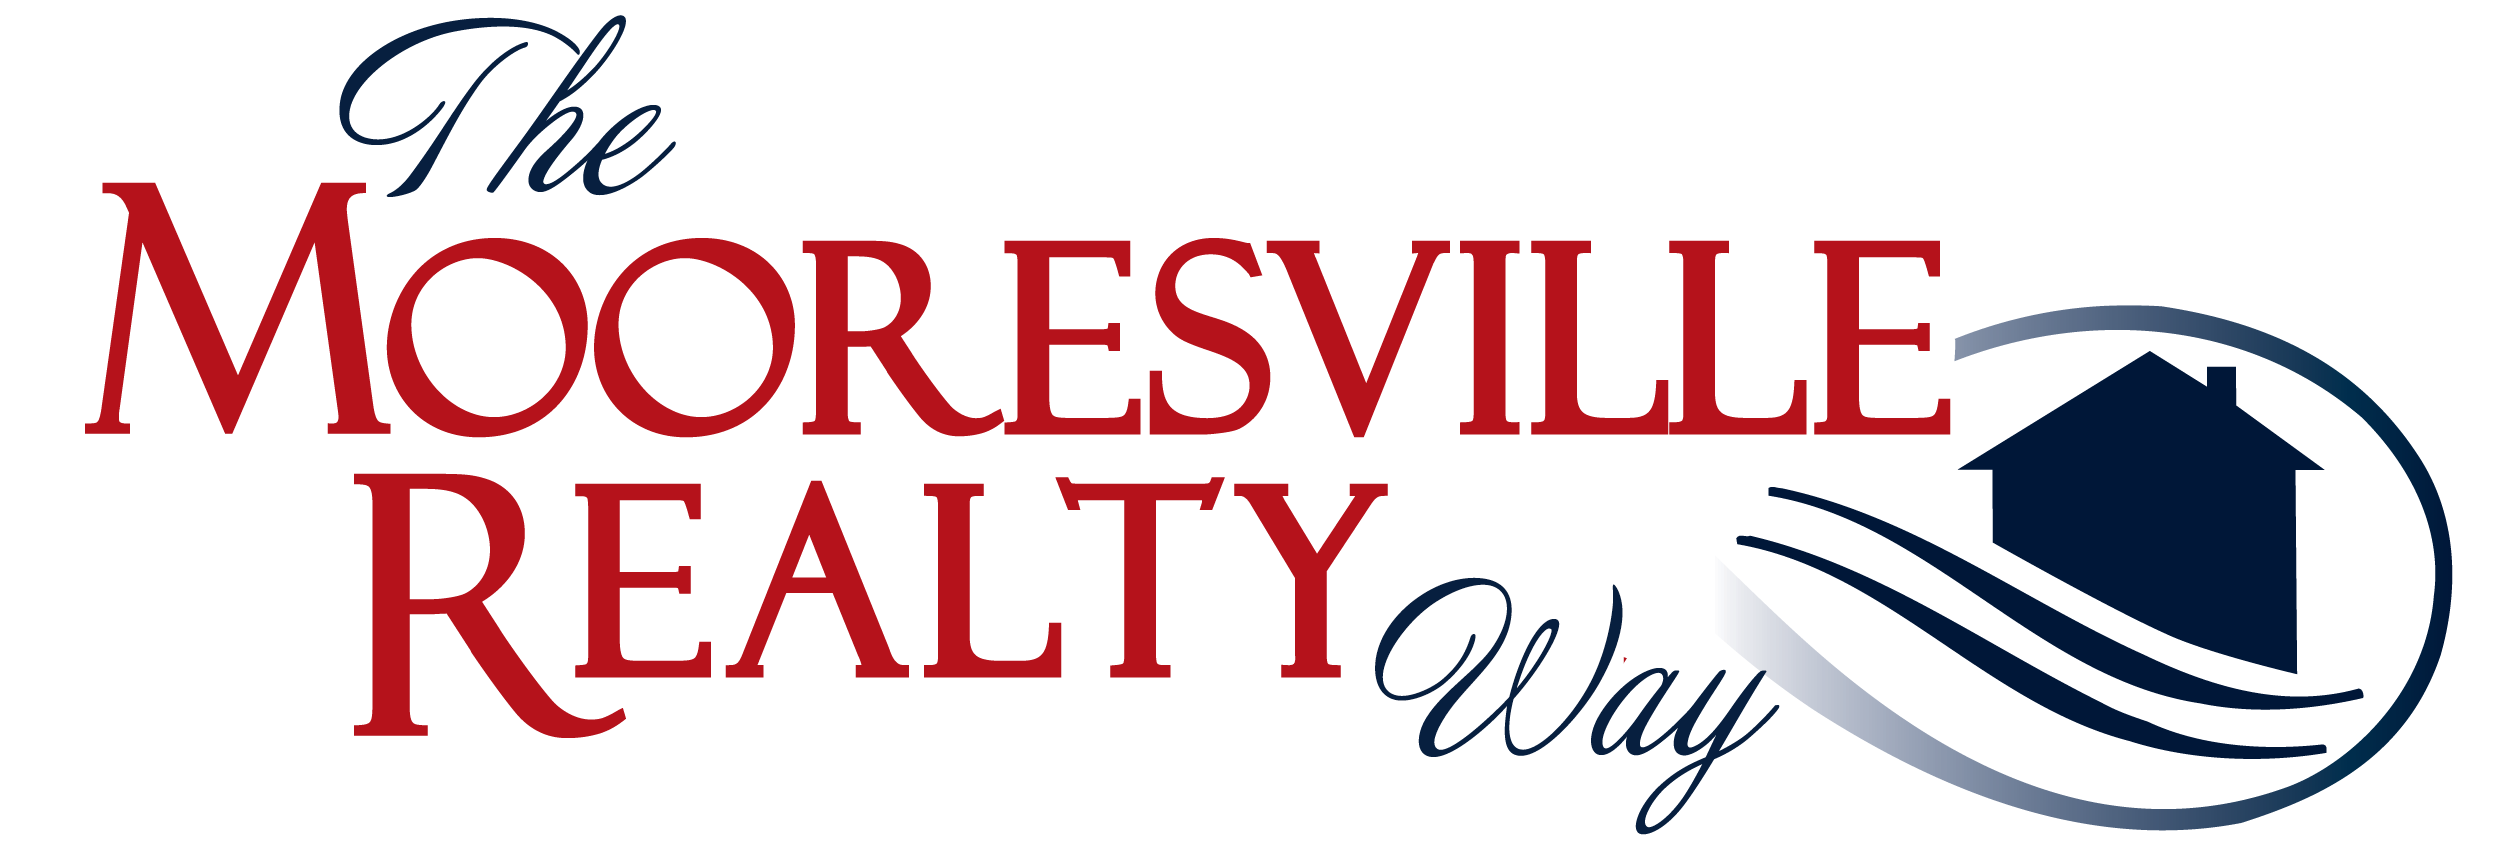 The Mooresville Realty Way